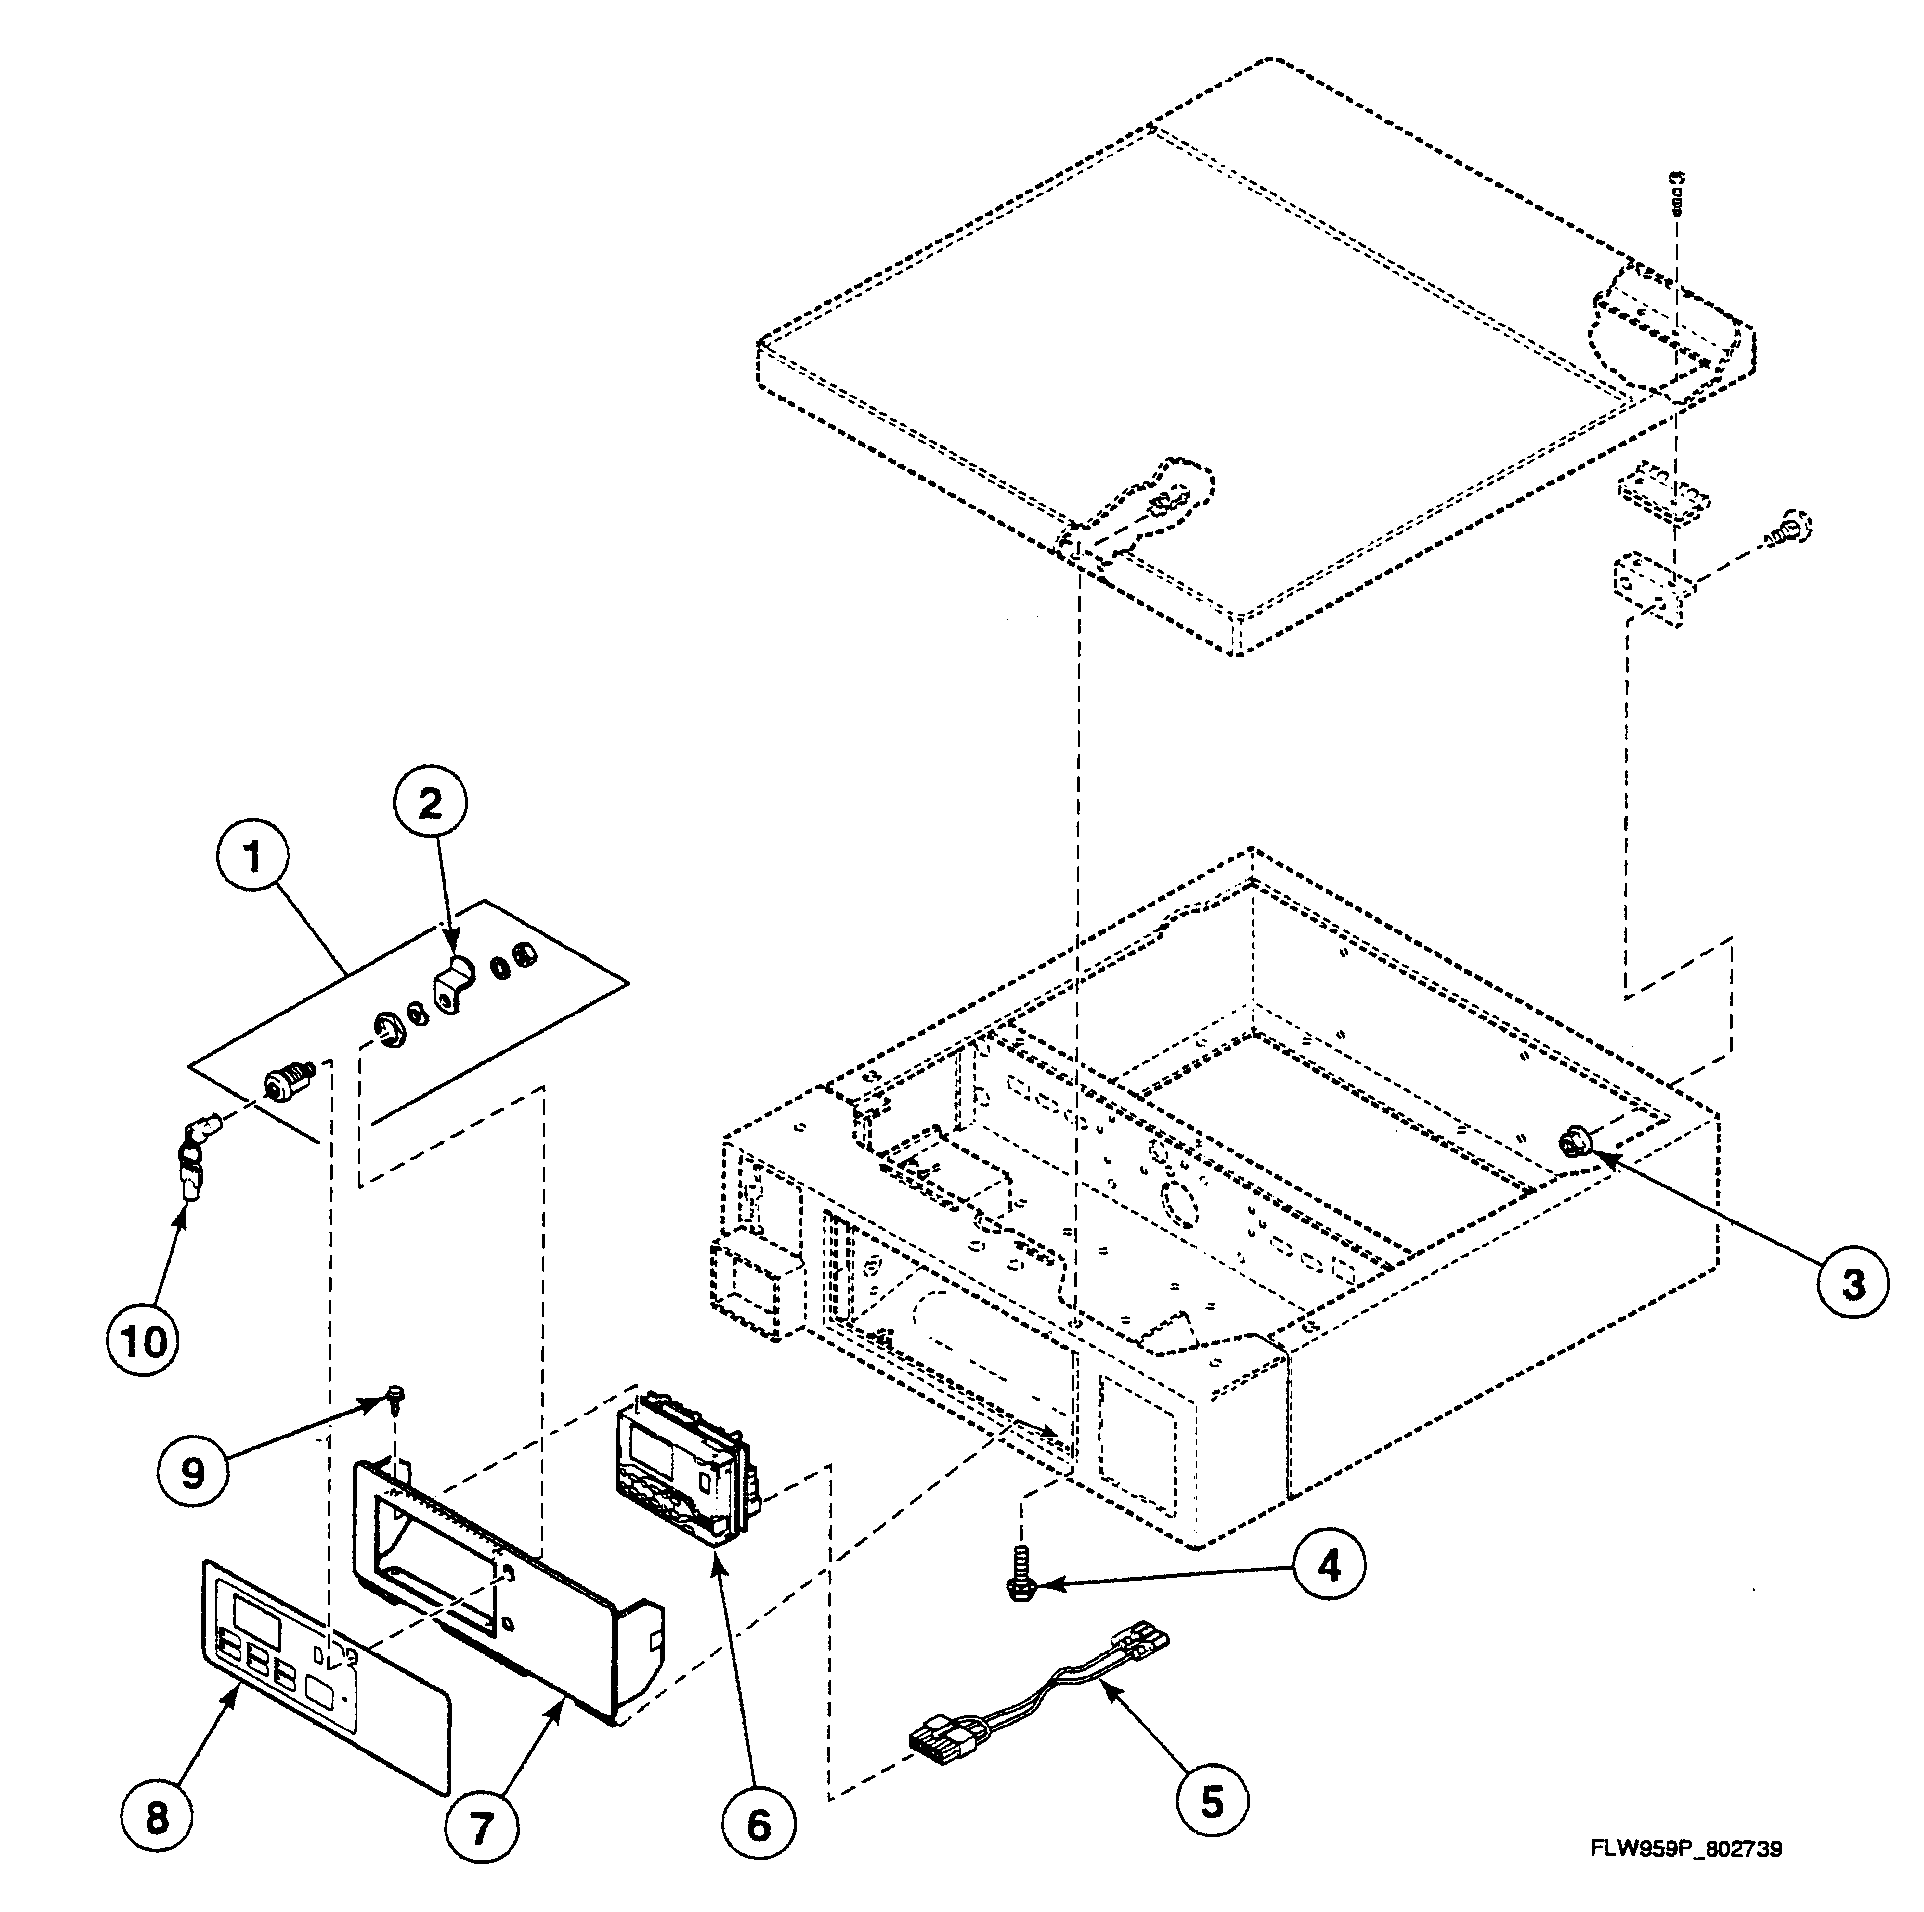 29 Speed Queen Commercial Washer Parts Diagram